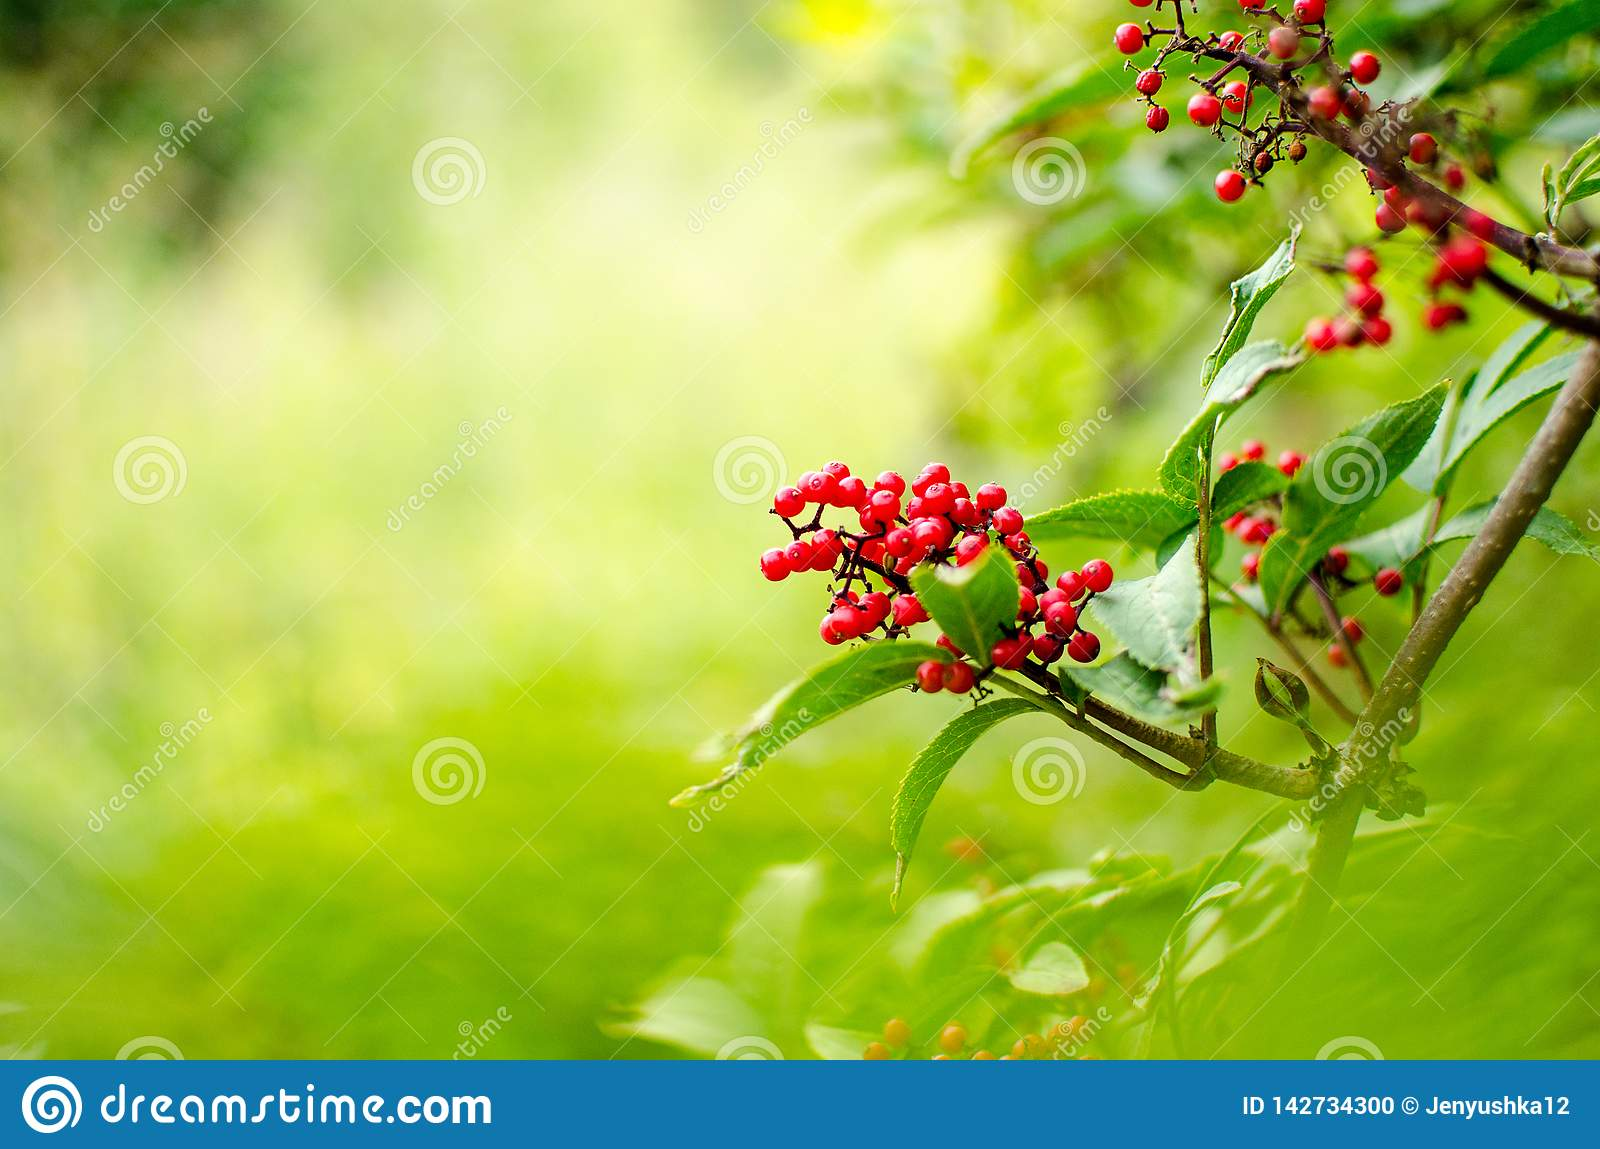 Red Rowanberries on a branch in summer